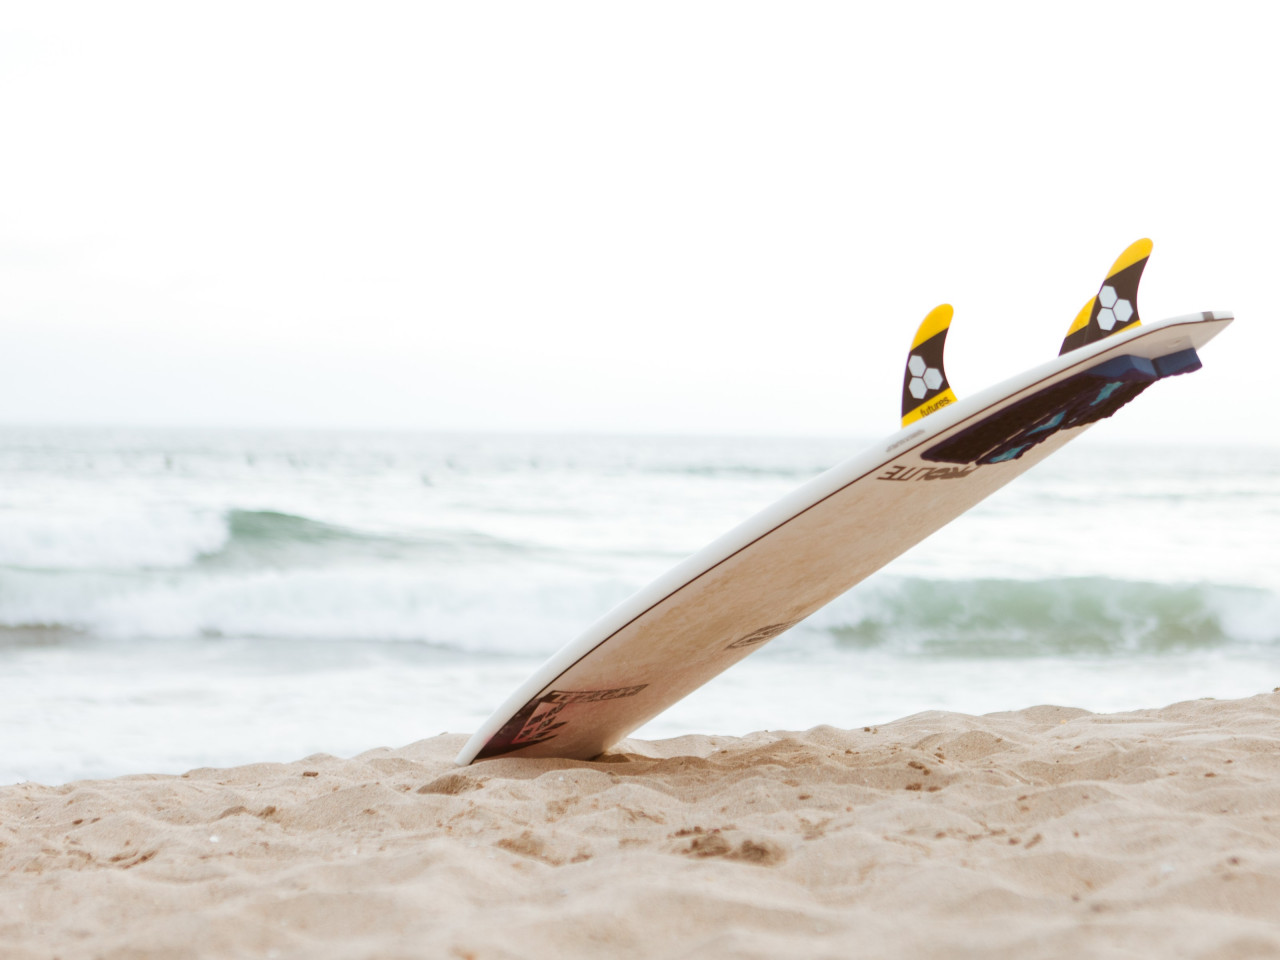 Surf board on the beach | 1280x960 wallpaper